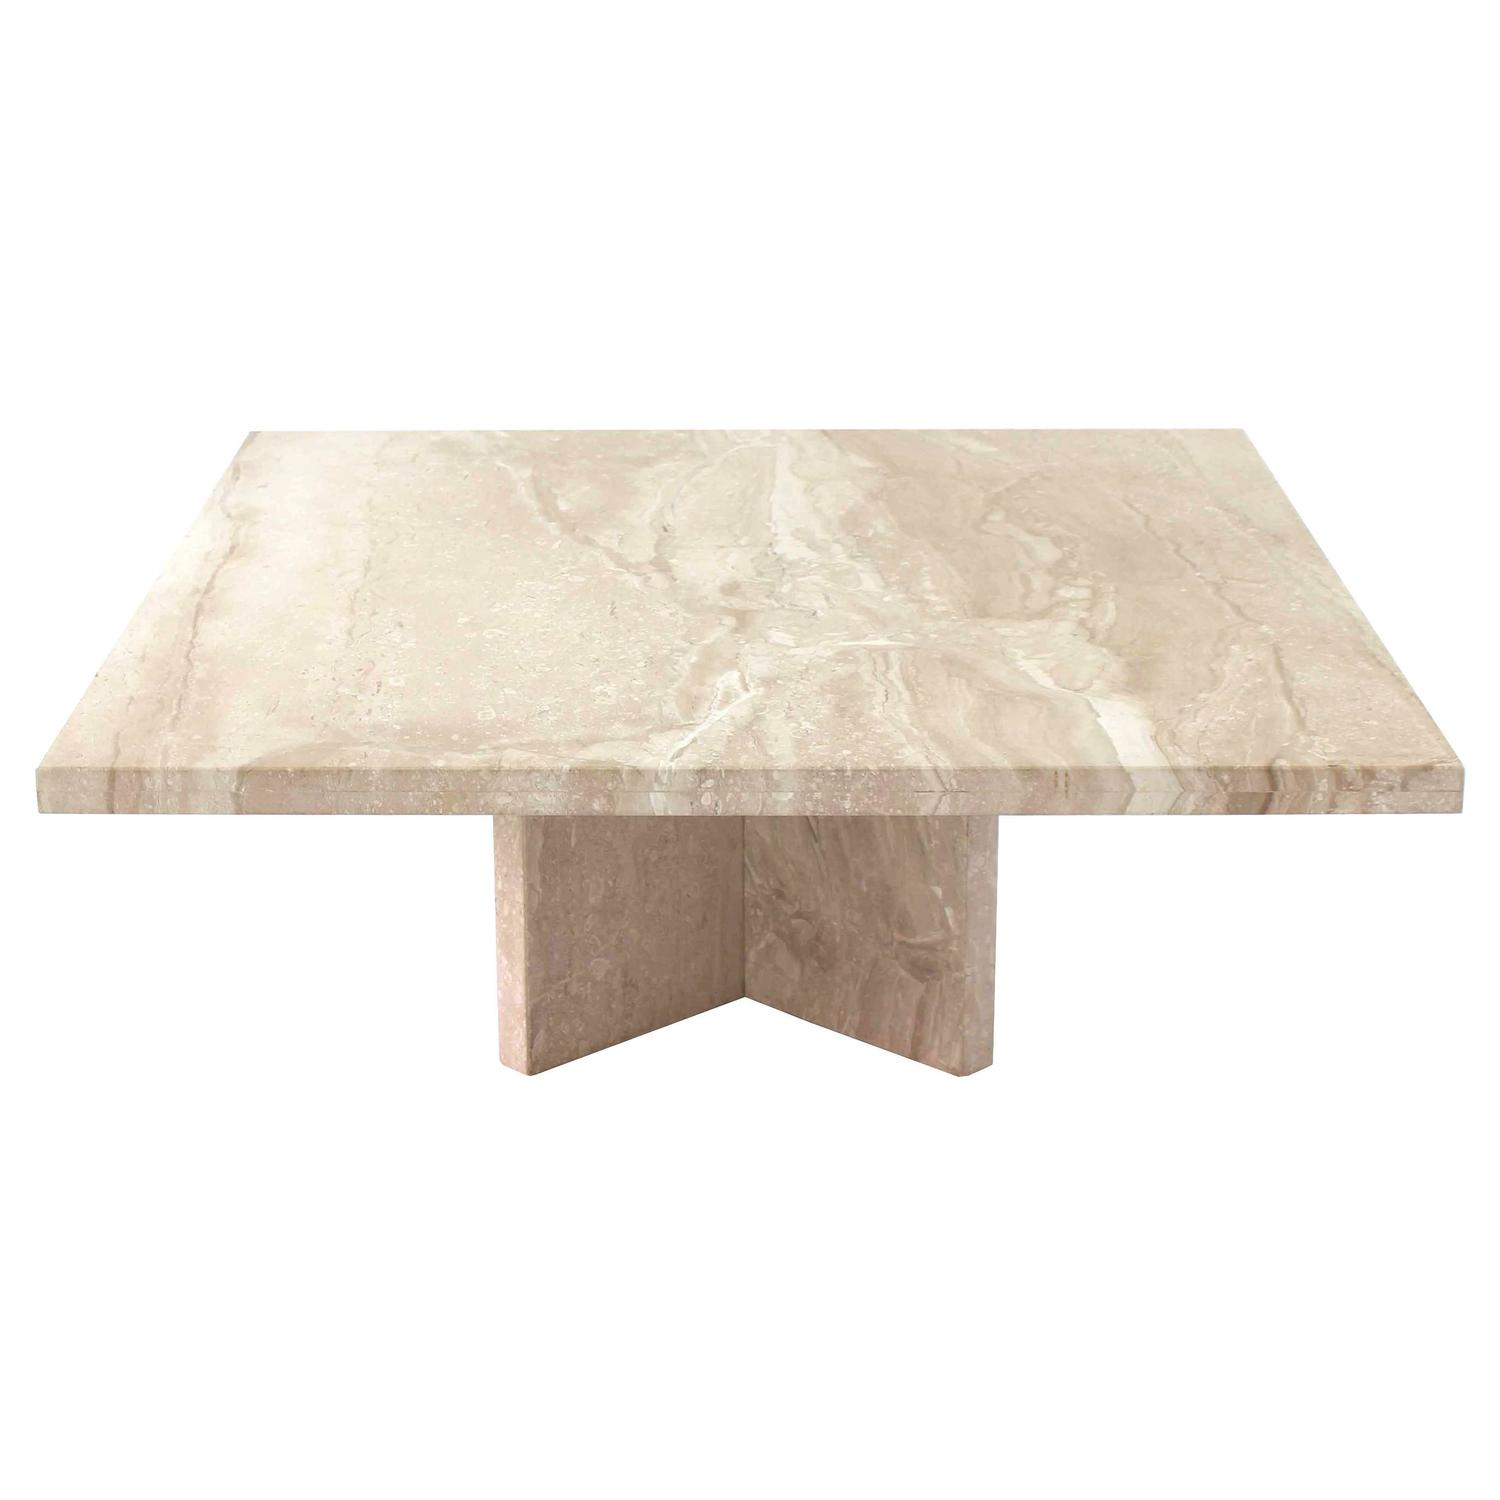 Versailles Square Coffee Table: Large Square Travertine Coffee Table For Sale At 1stdibs